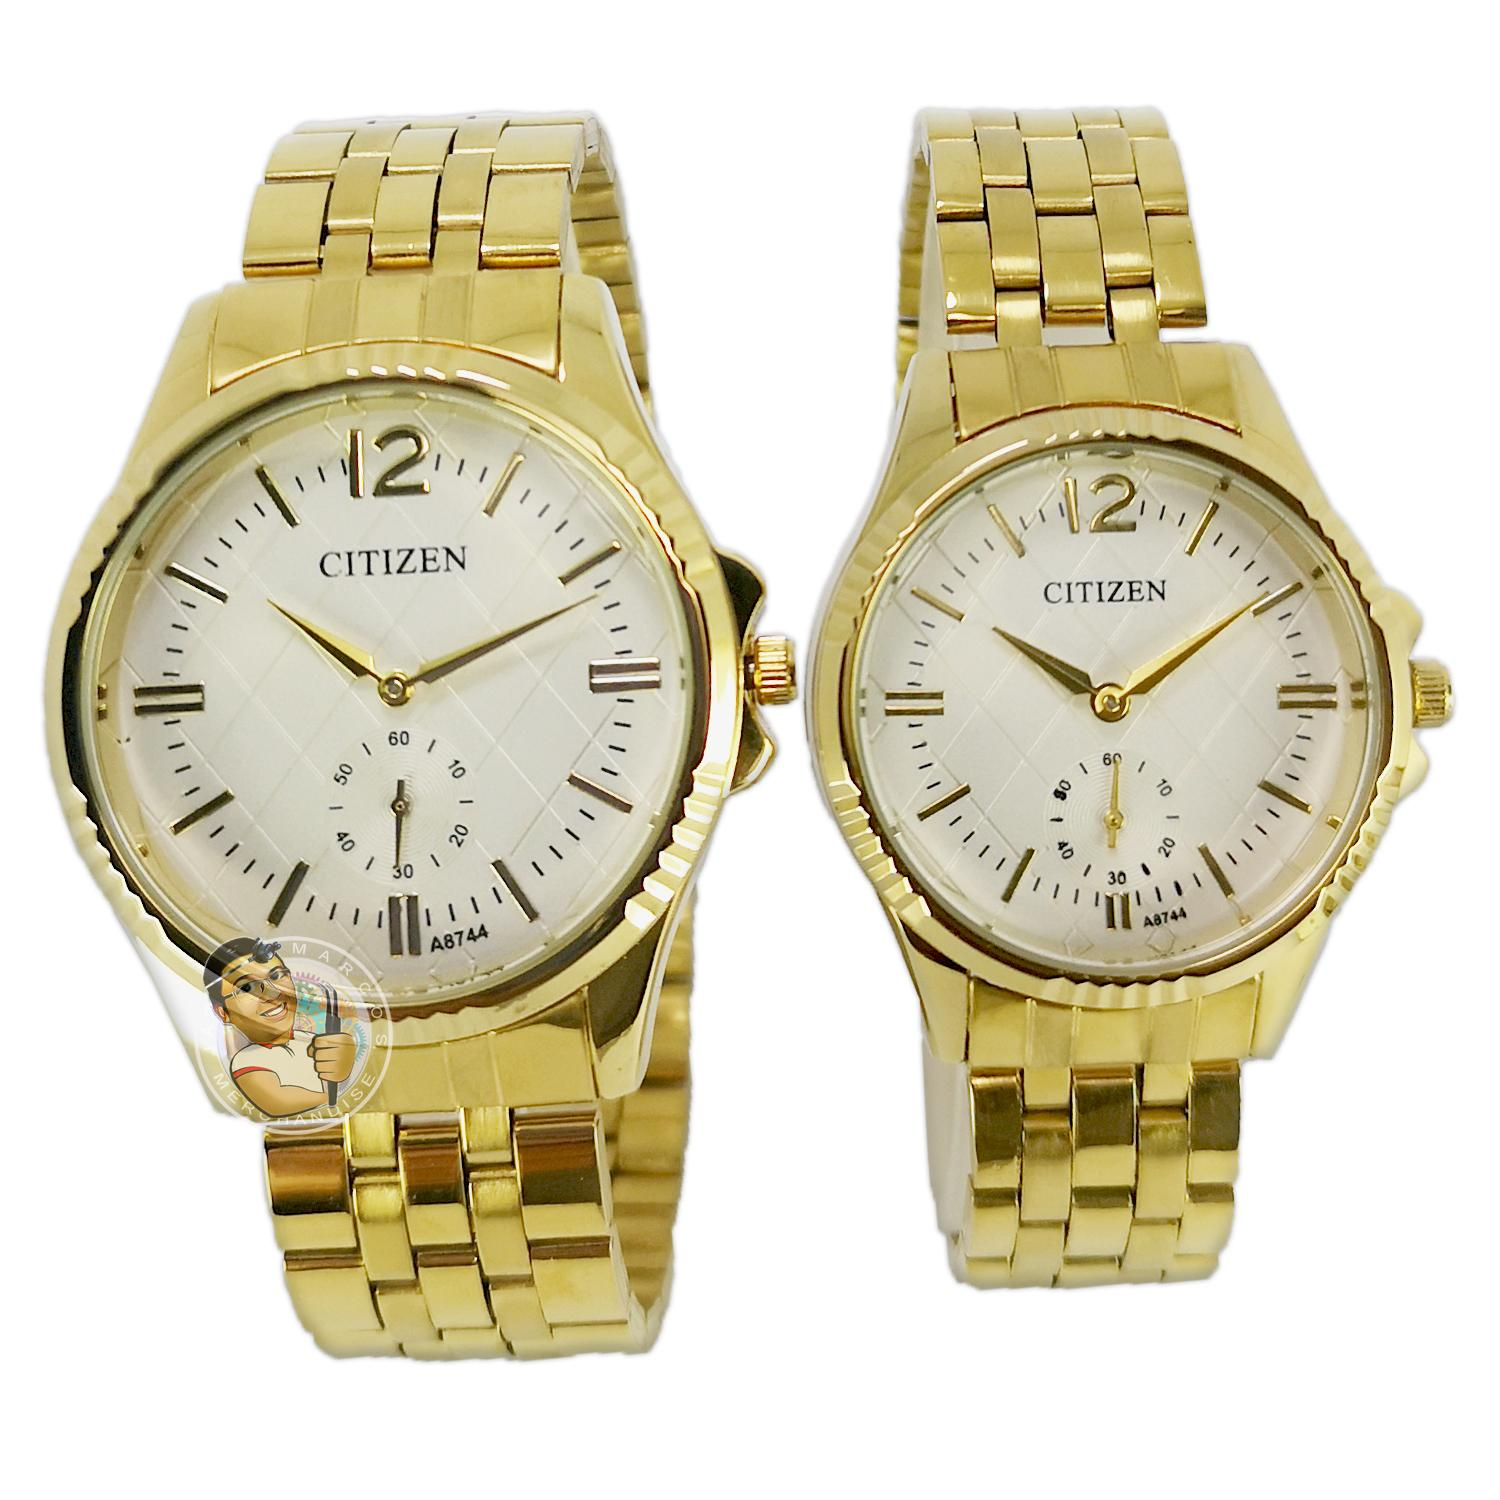 54b7d78ba Citizen GoldPlated Stainless Steel White dial for Couples Business Watch